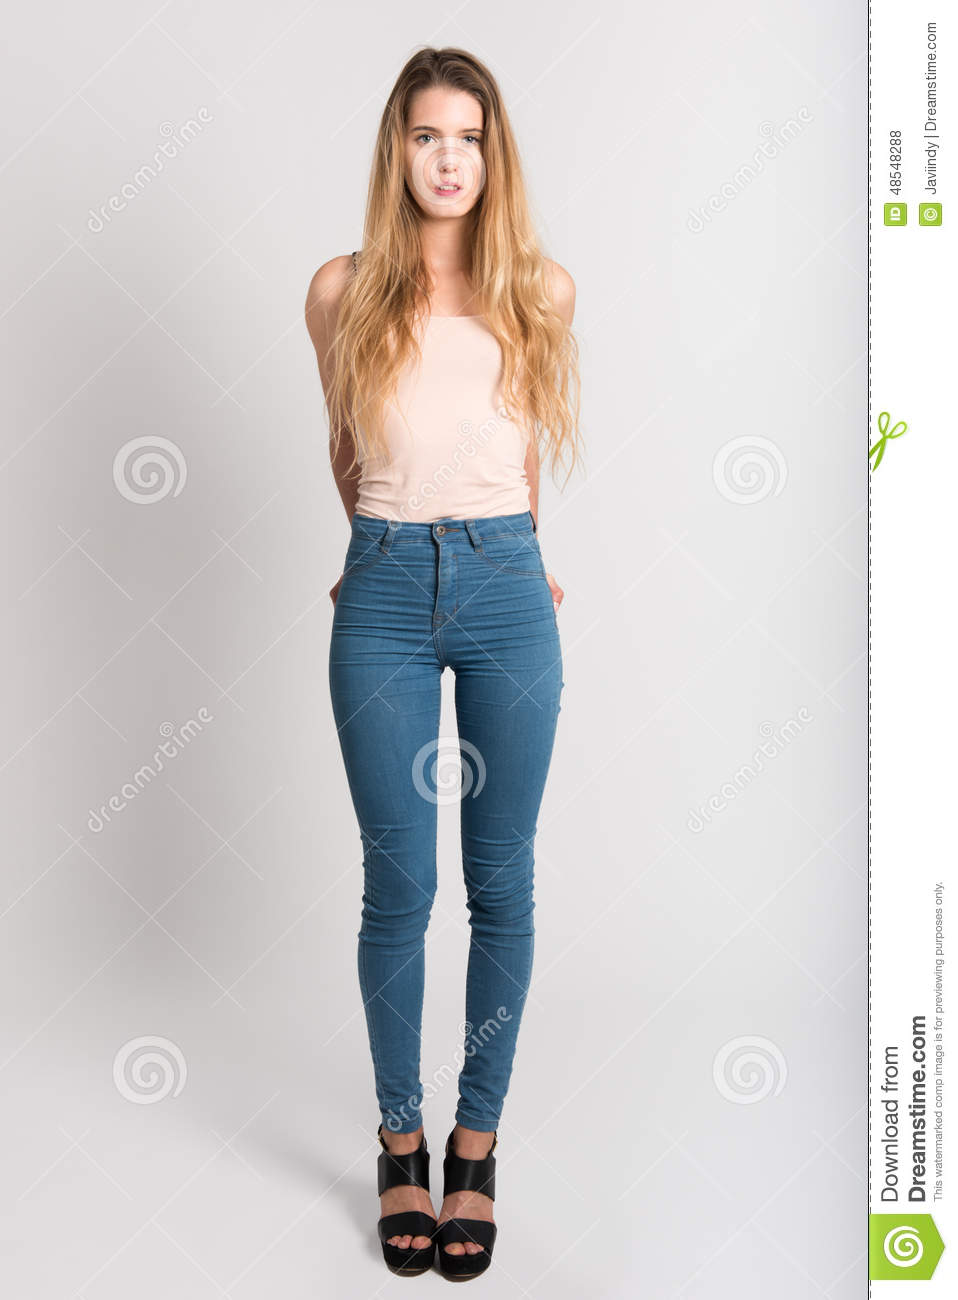 Sexy jeans thigh gap big booty 5